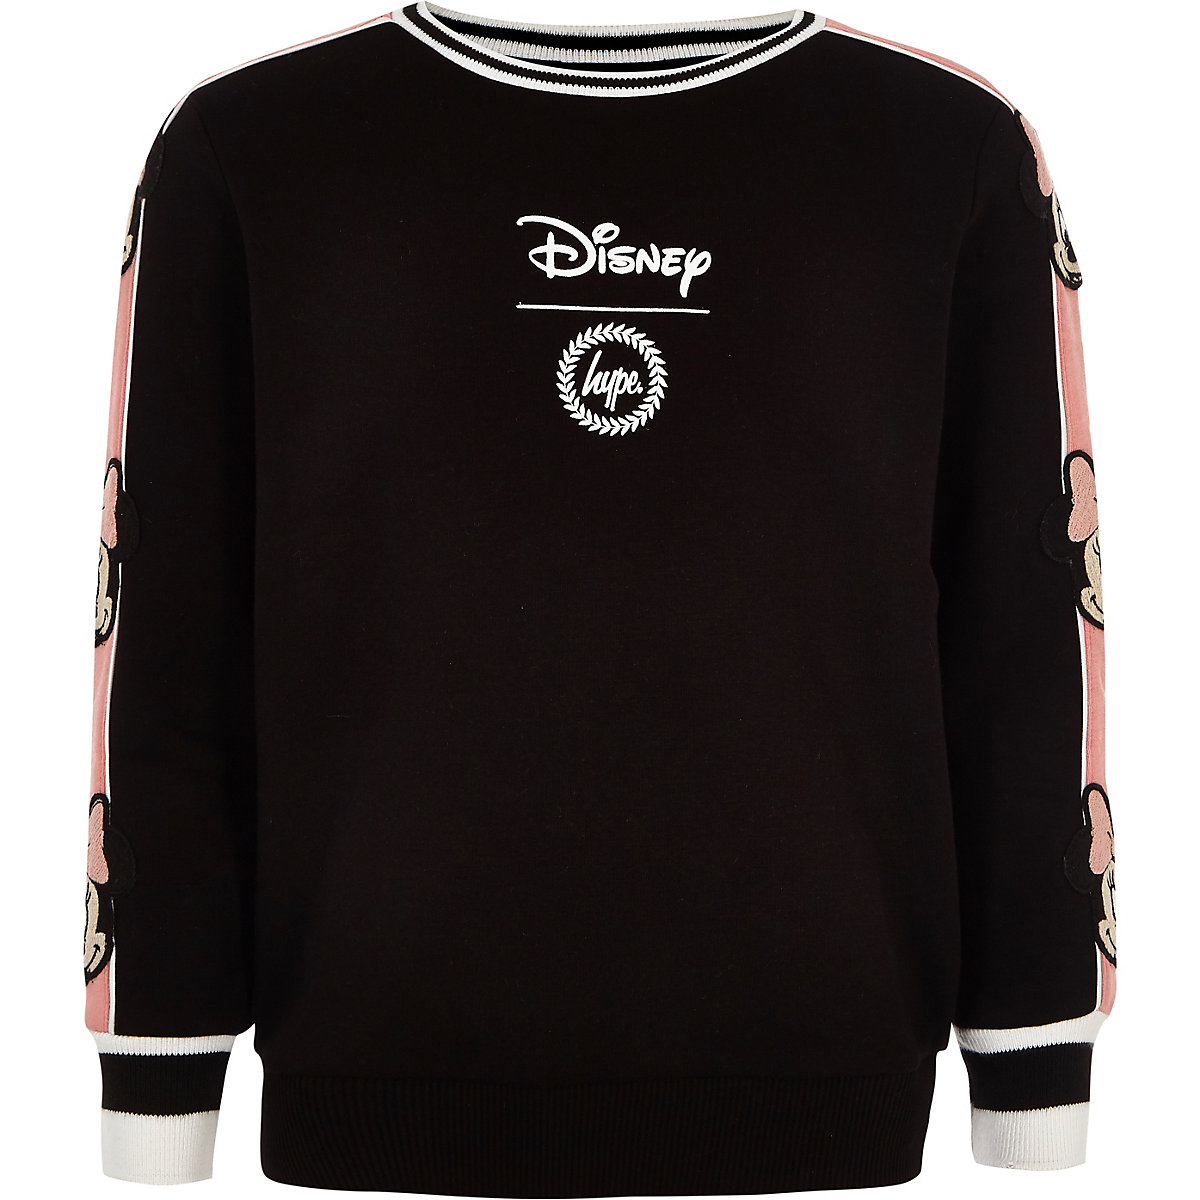 Girls black Hype Disney sweatshirt